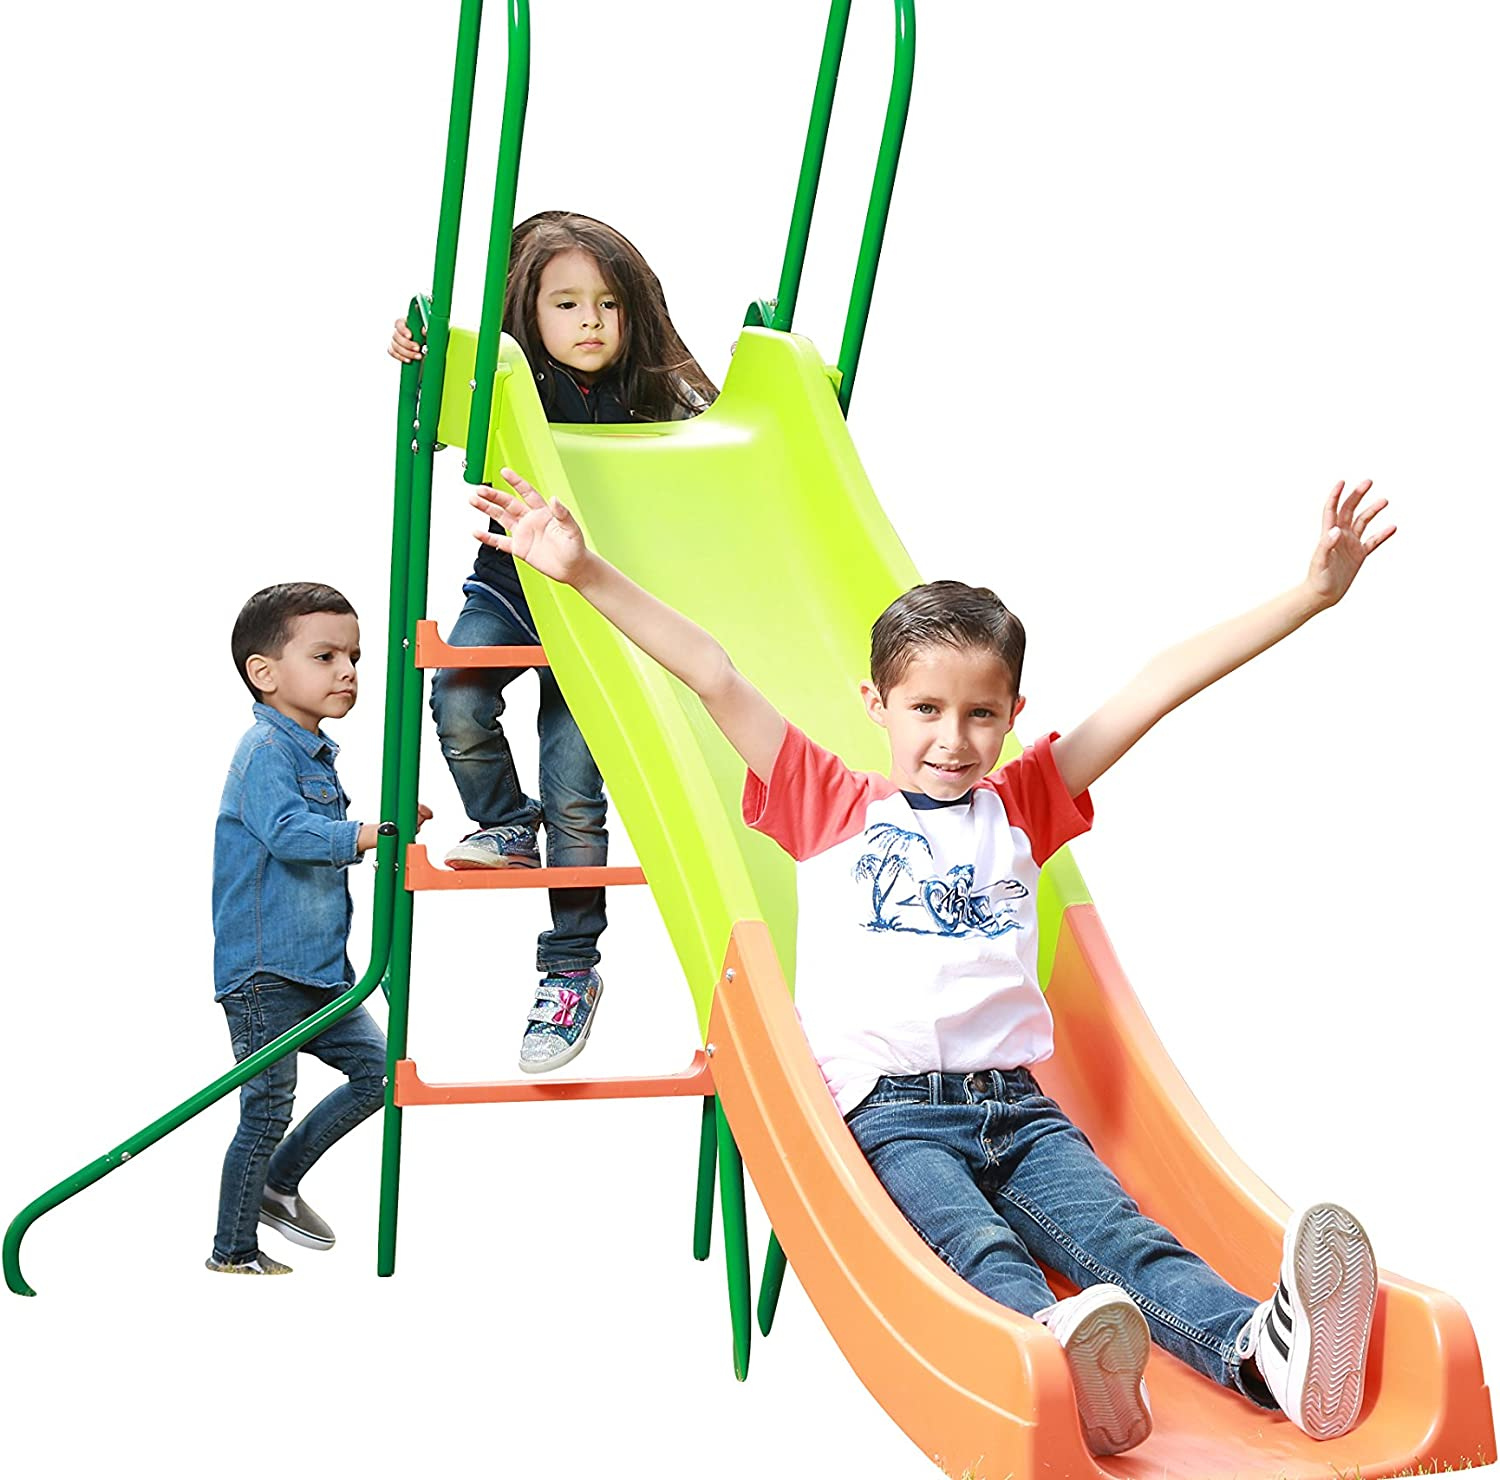 SLIDEWHIZZER Kids Play Outdoor Slide; OFFicial store Freestandi 8-FT New products, world's highest quality popular! Playground